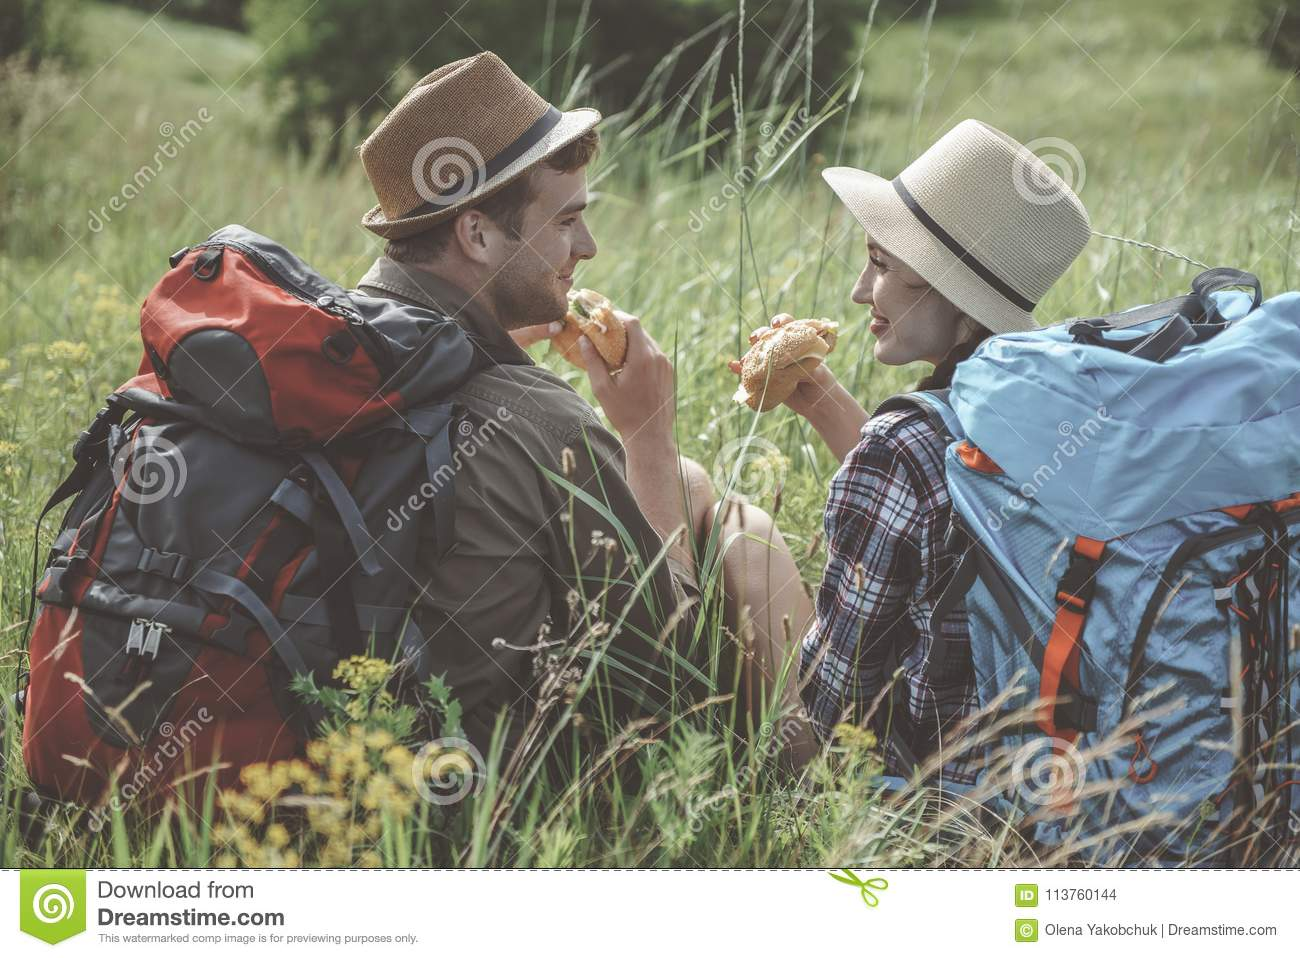 Optimistic girl and guy are eating outdoors